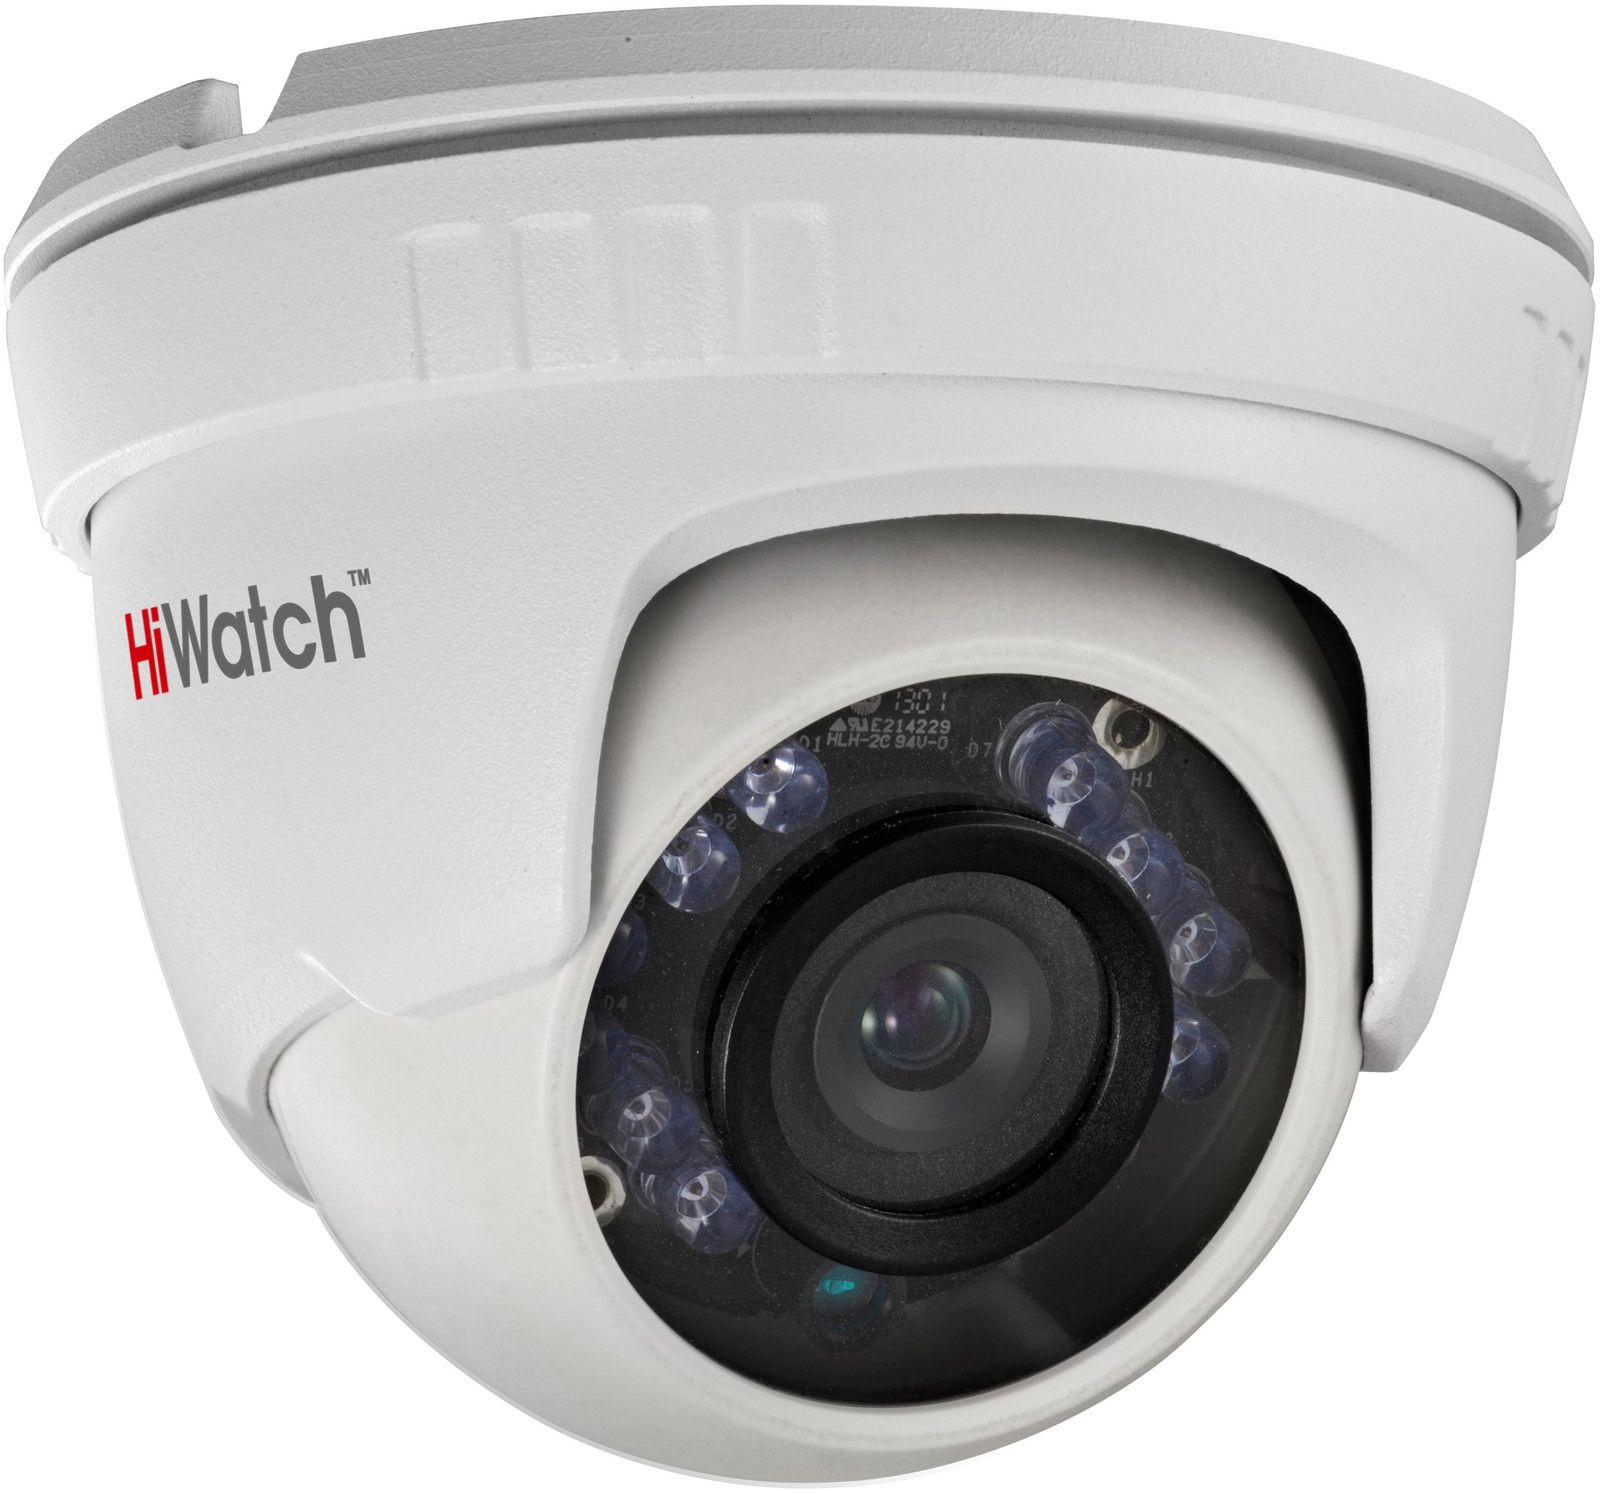 HikVision HiWatch Ds-T103-F